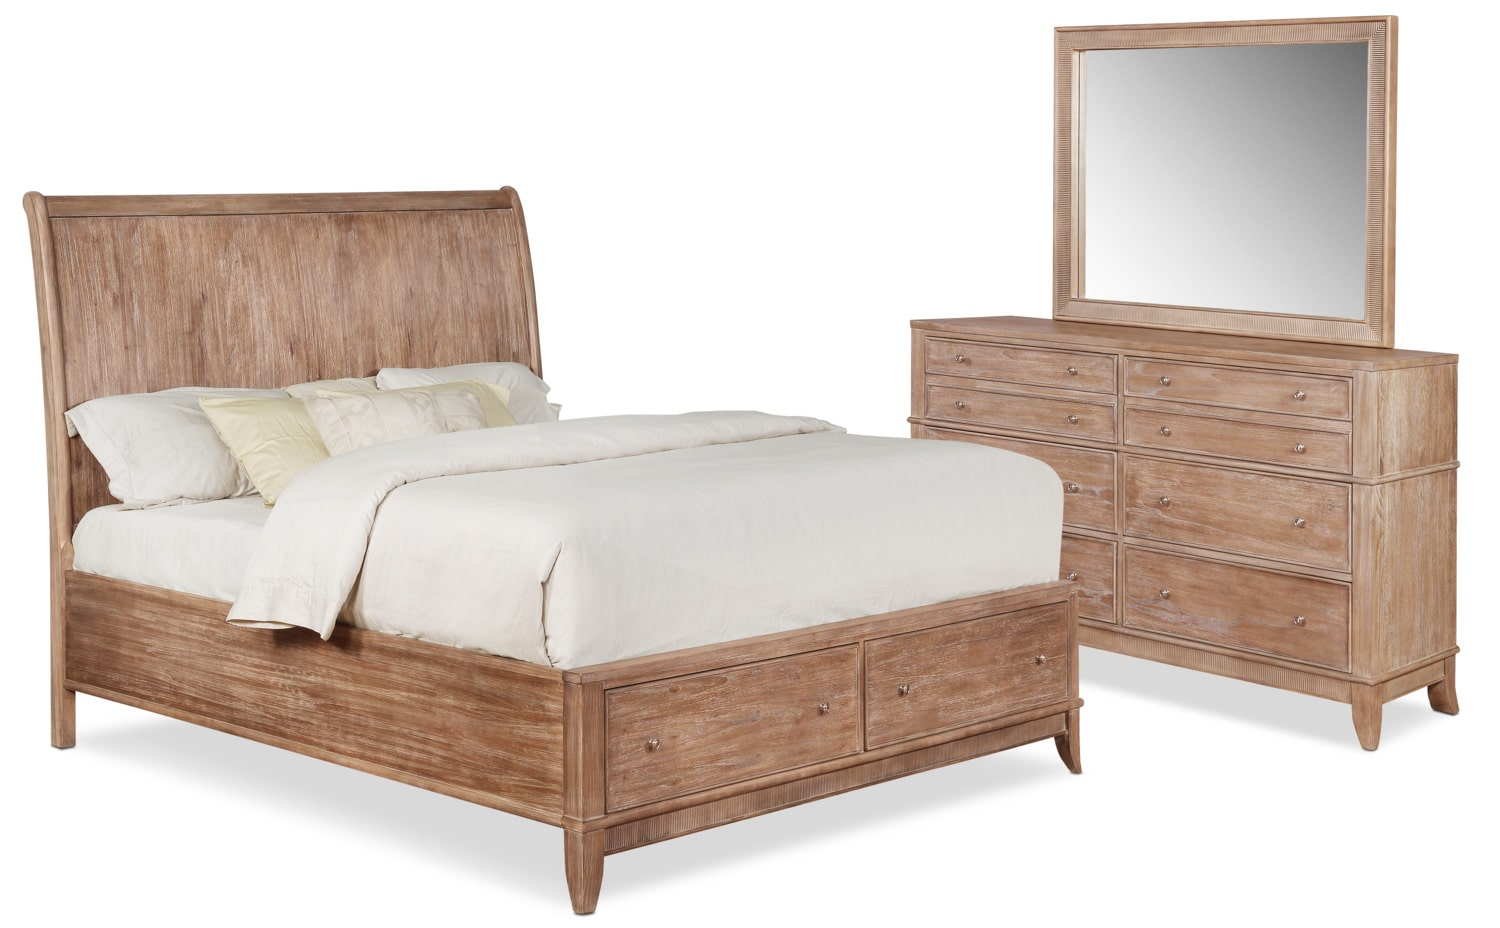 Hazel 5-Piece Bedroom Set with Dresser and Mirror | Value City ...